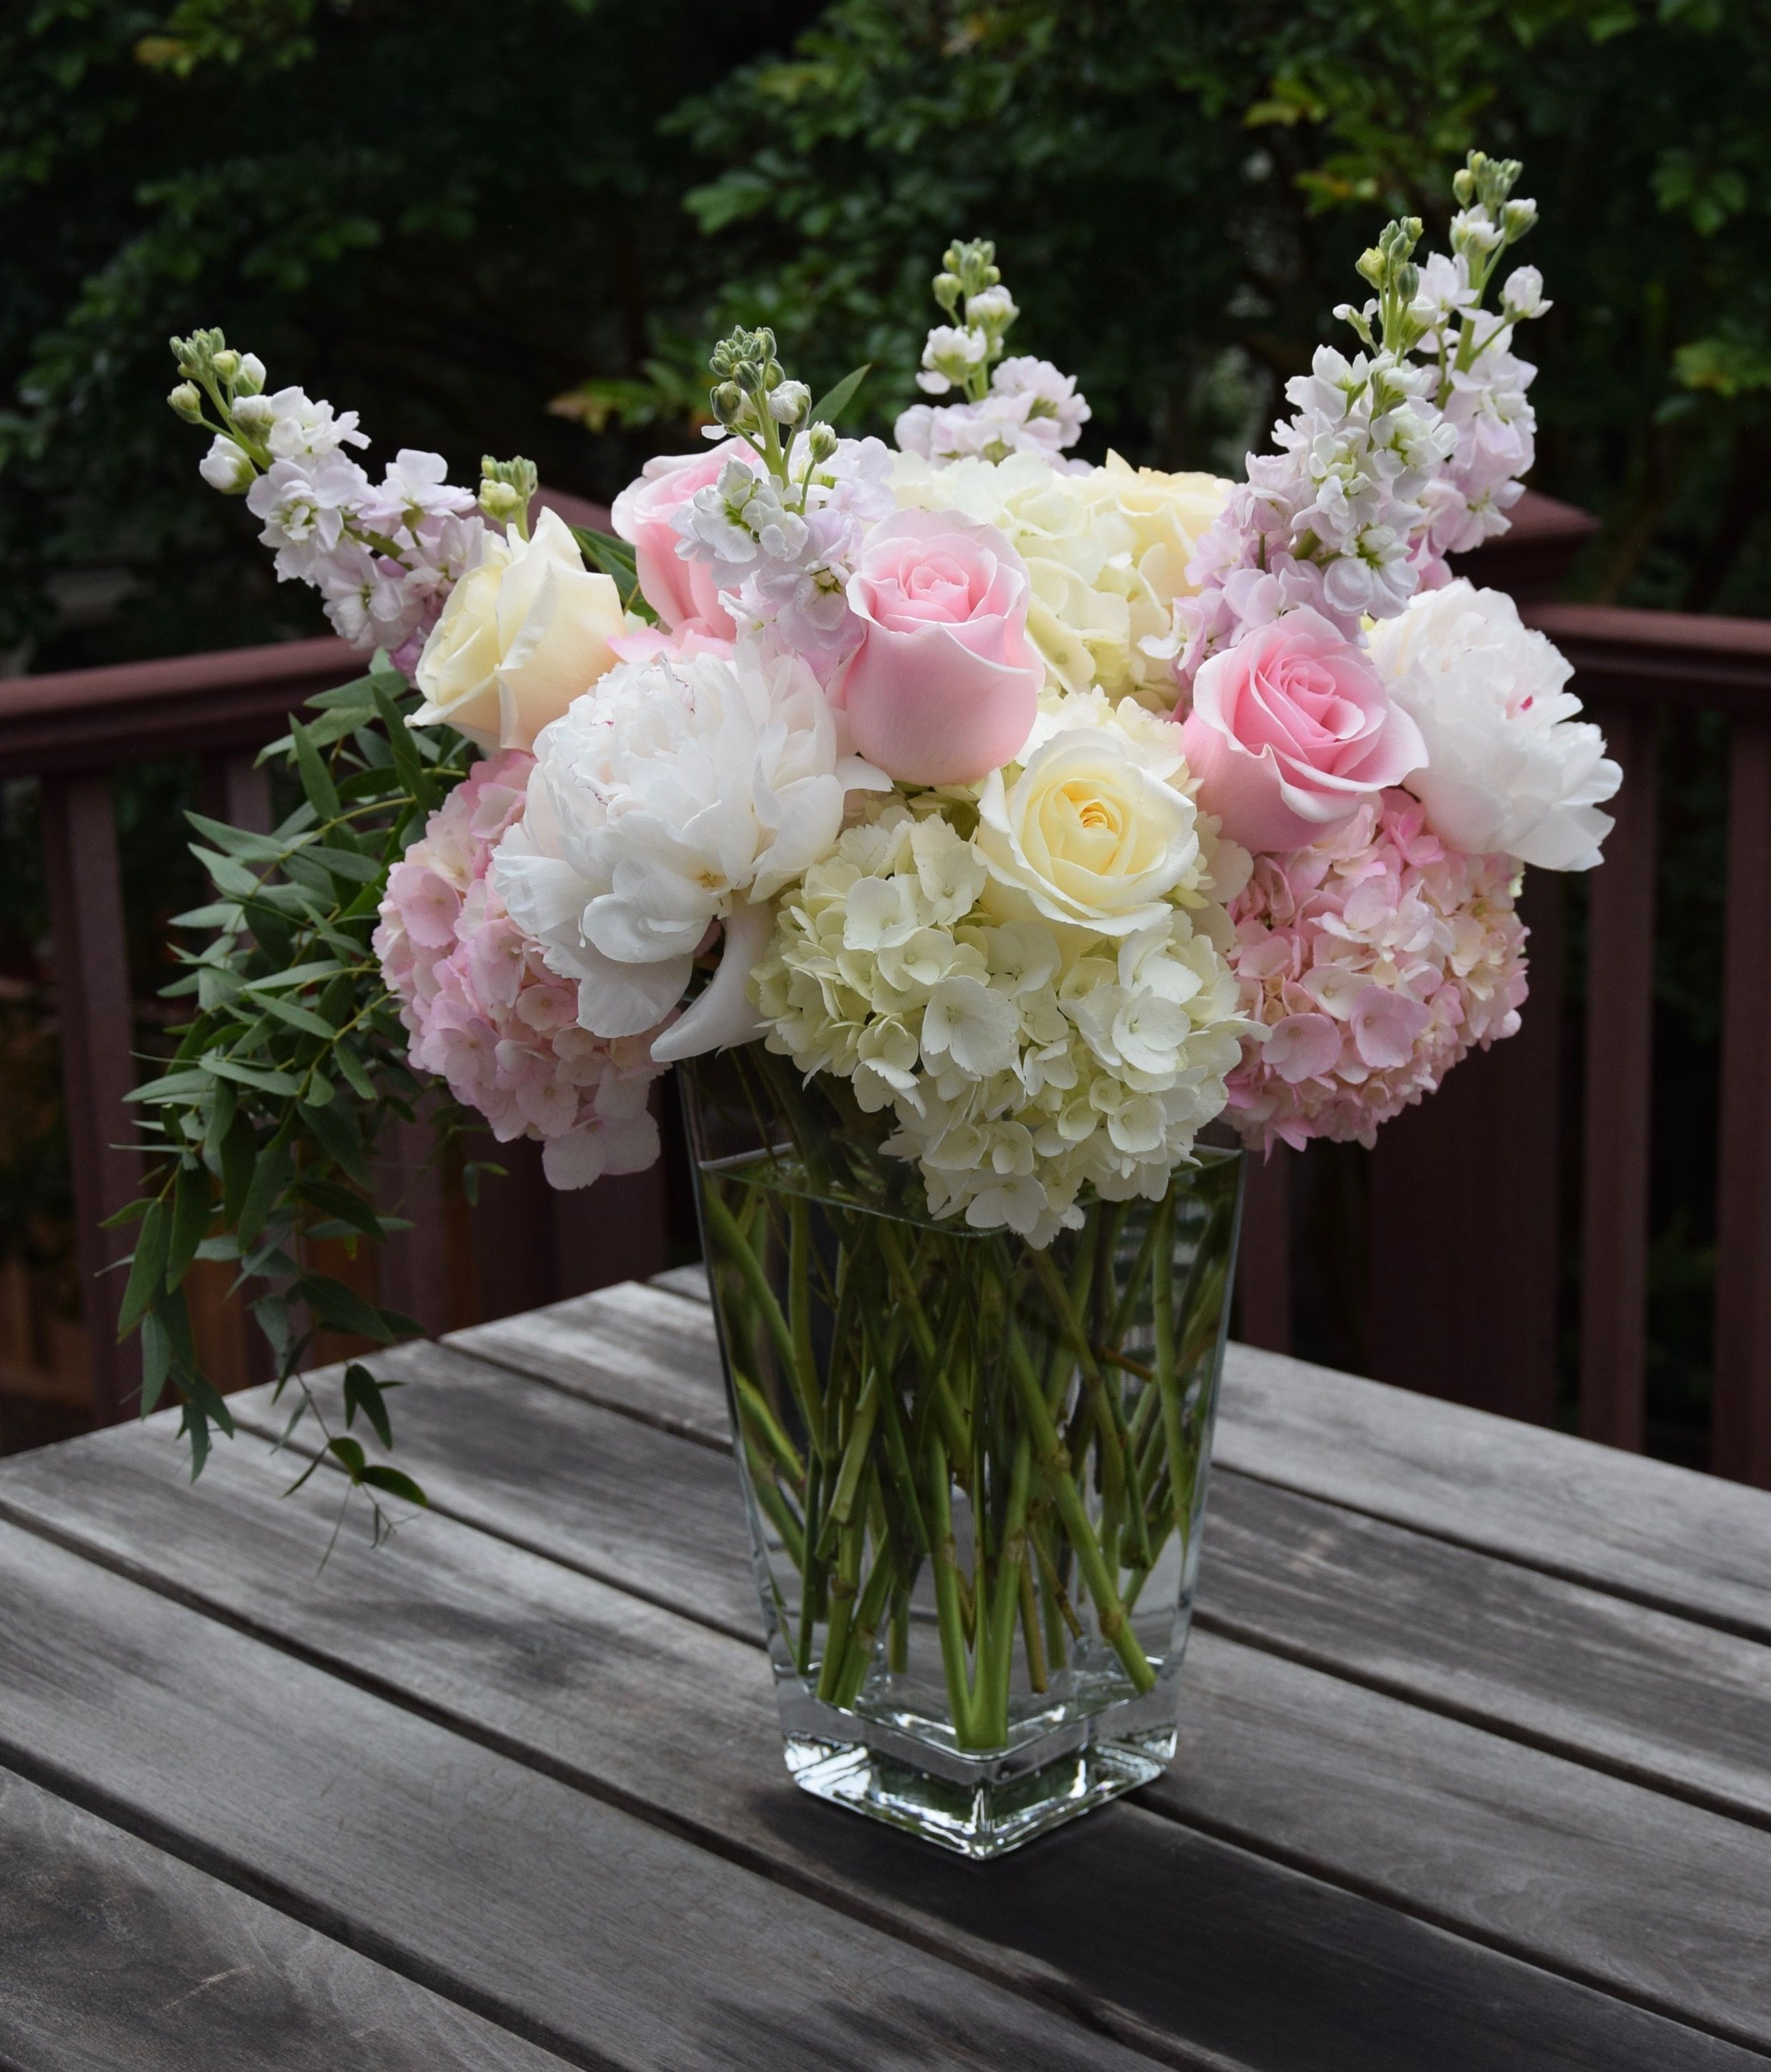 Tall Flower Arrangement For Mother S Day With Hydrangeas Peonies Stock Ro Birthday Flowers Arrangements Fresh Flowers Arrangements Flower Arrangements Diy